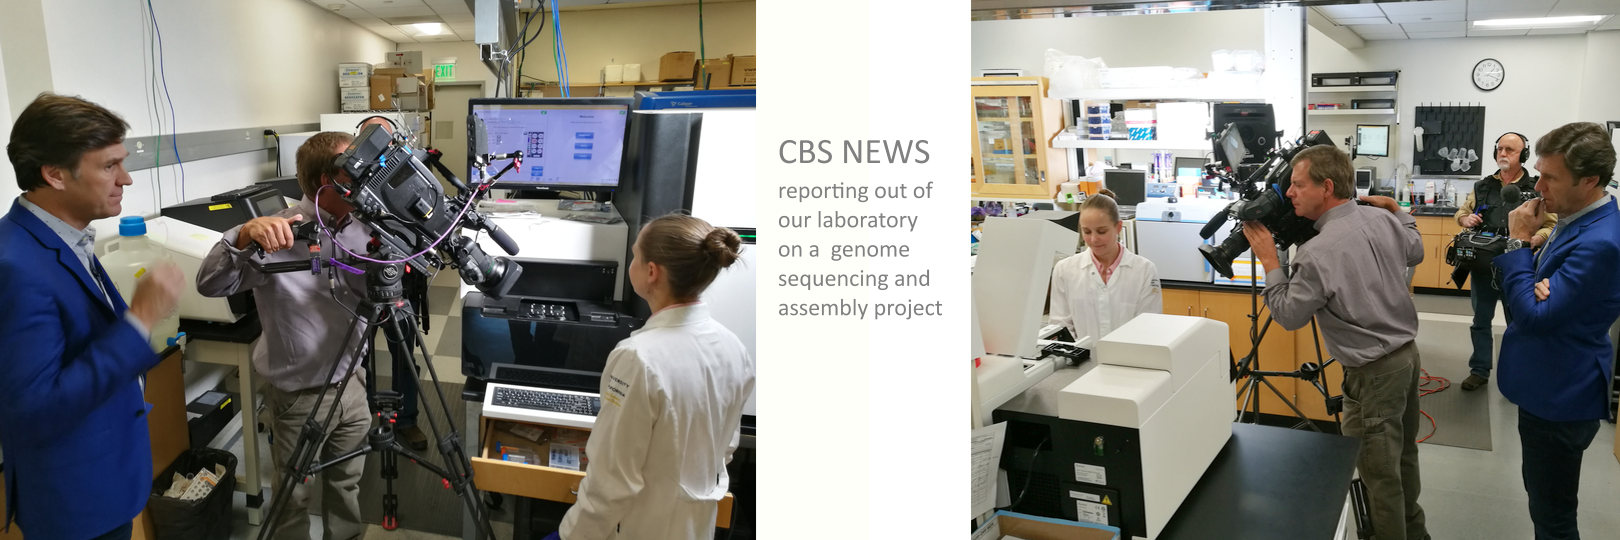 CBS News reporting out of our laboratory